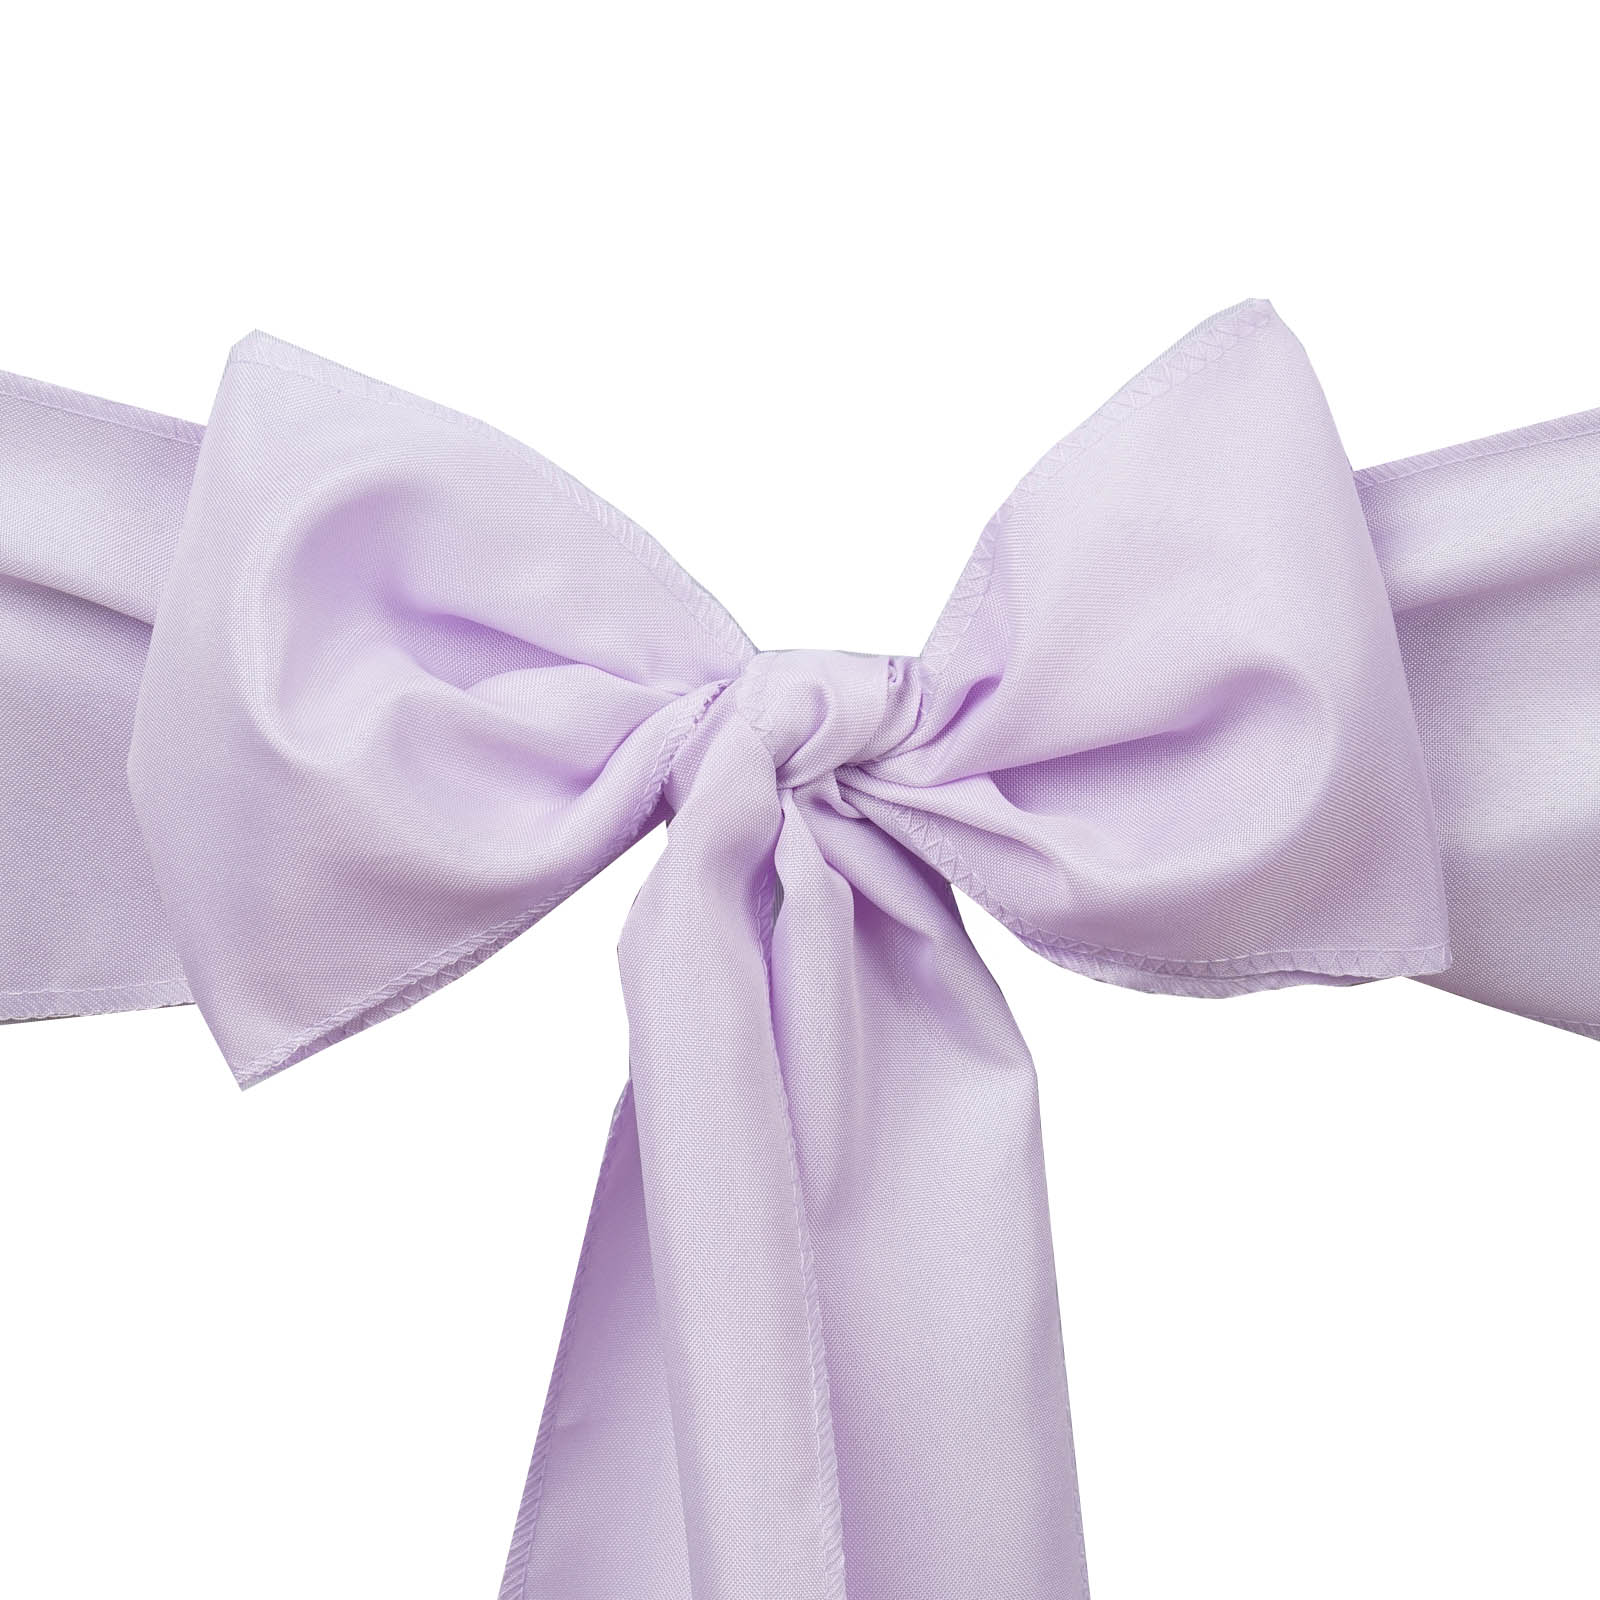 Chair Bows 50 Polyester Chair Sashes Ties Bows Wedding Party Ceremony